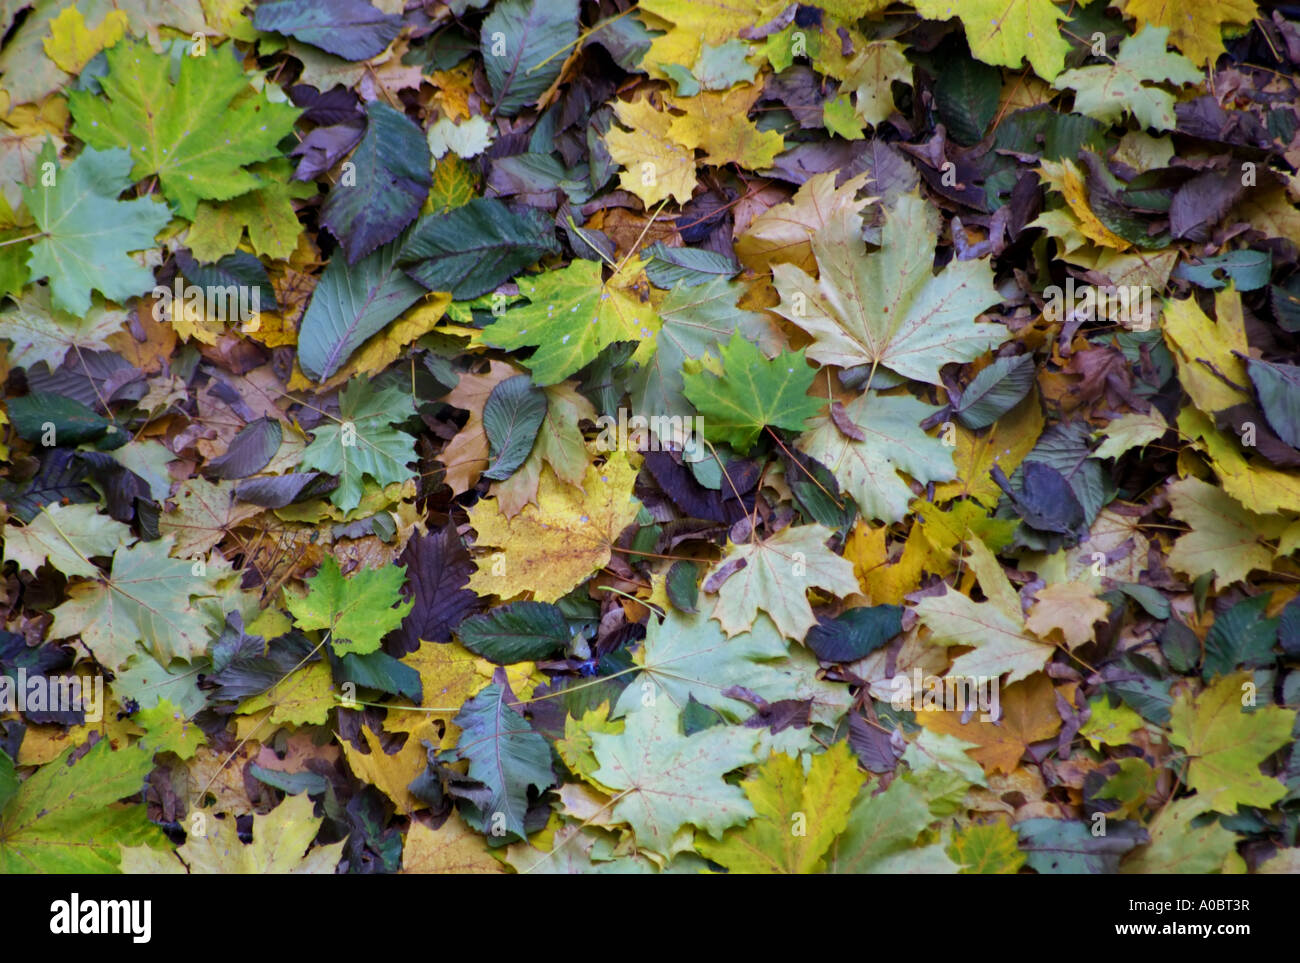 A lot of leafs on the gruond in Gronland Norway captured October 2006 - Stock Image